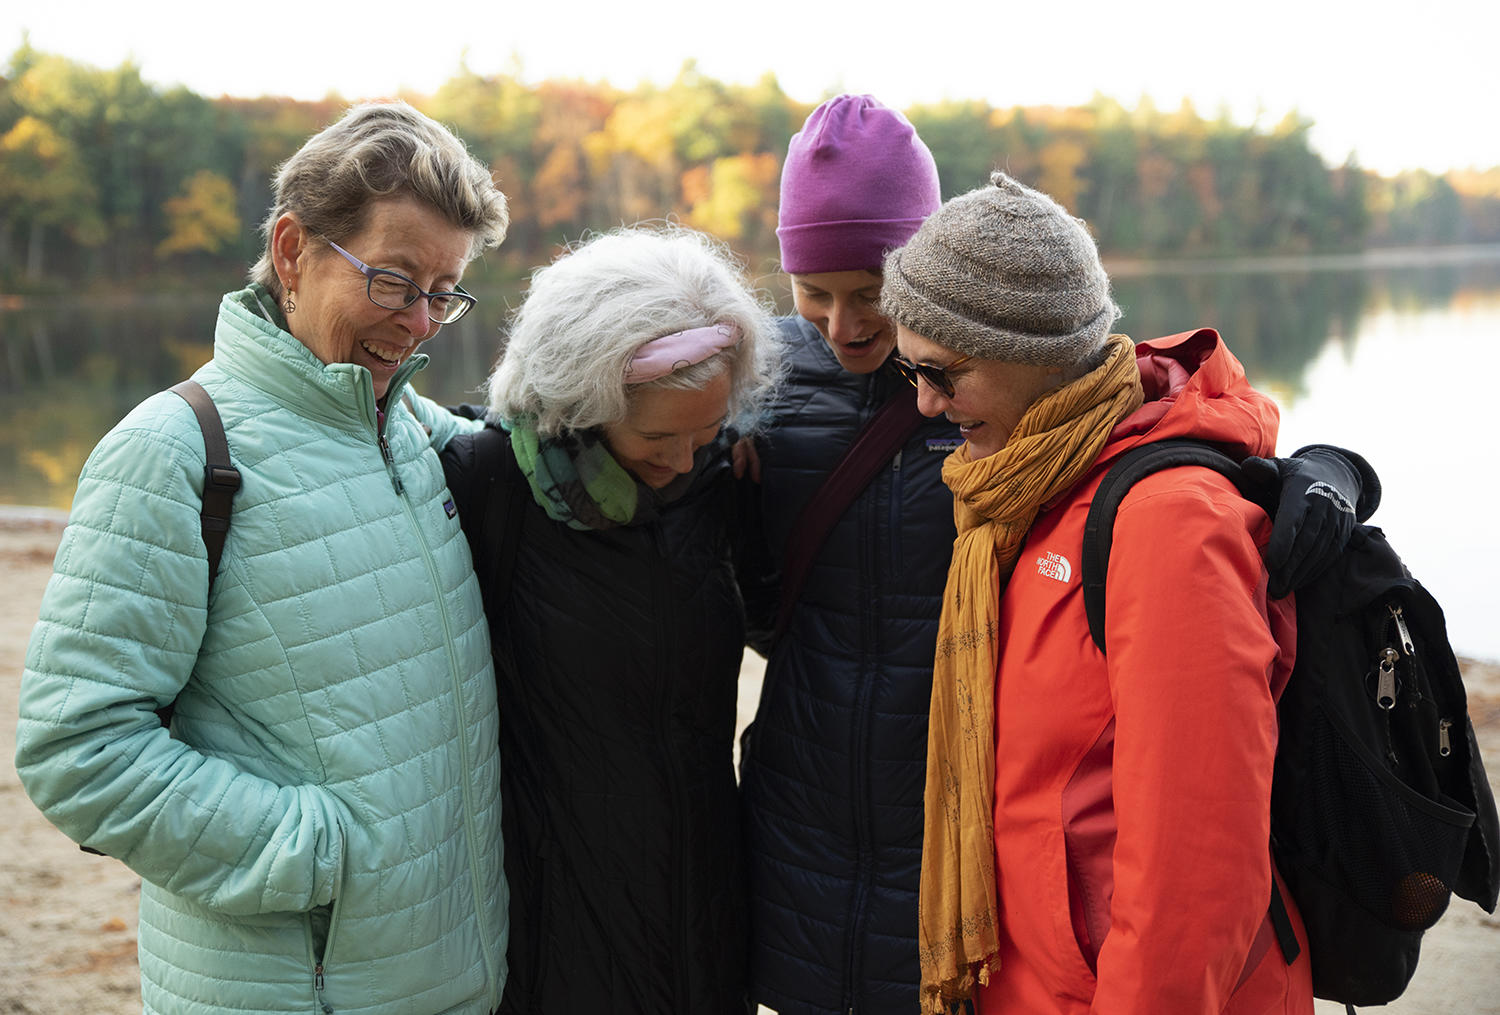 Memorial Church congregants and Harvard students take a pilgrimage to Walden Pond